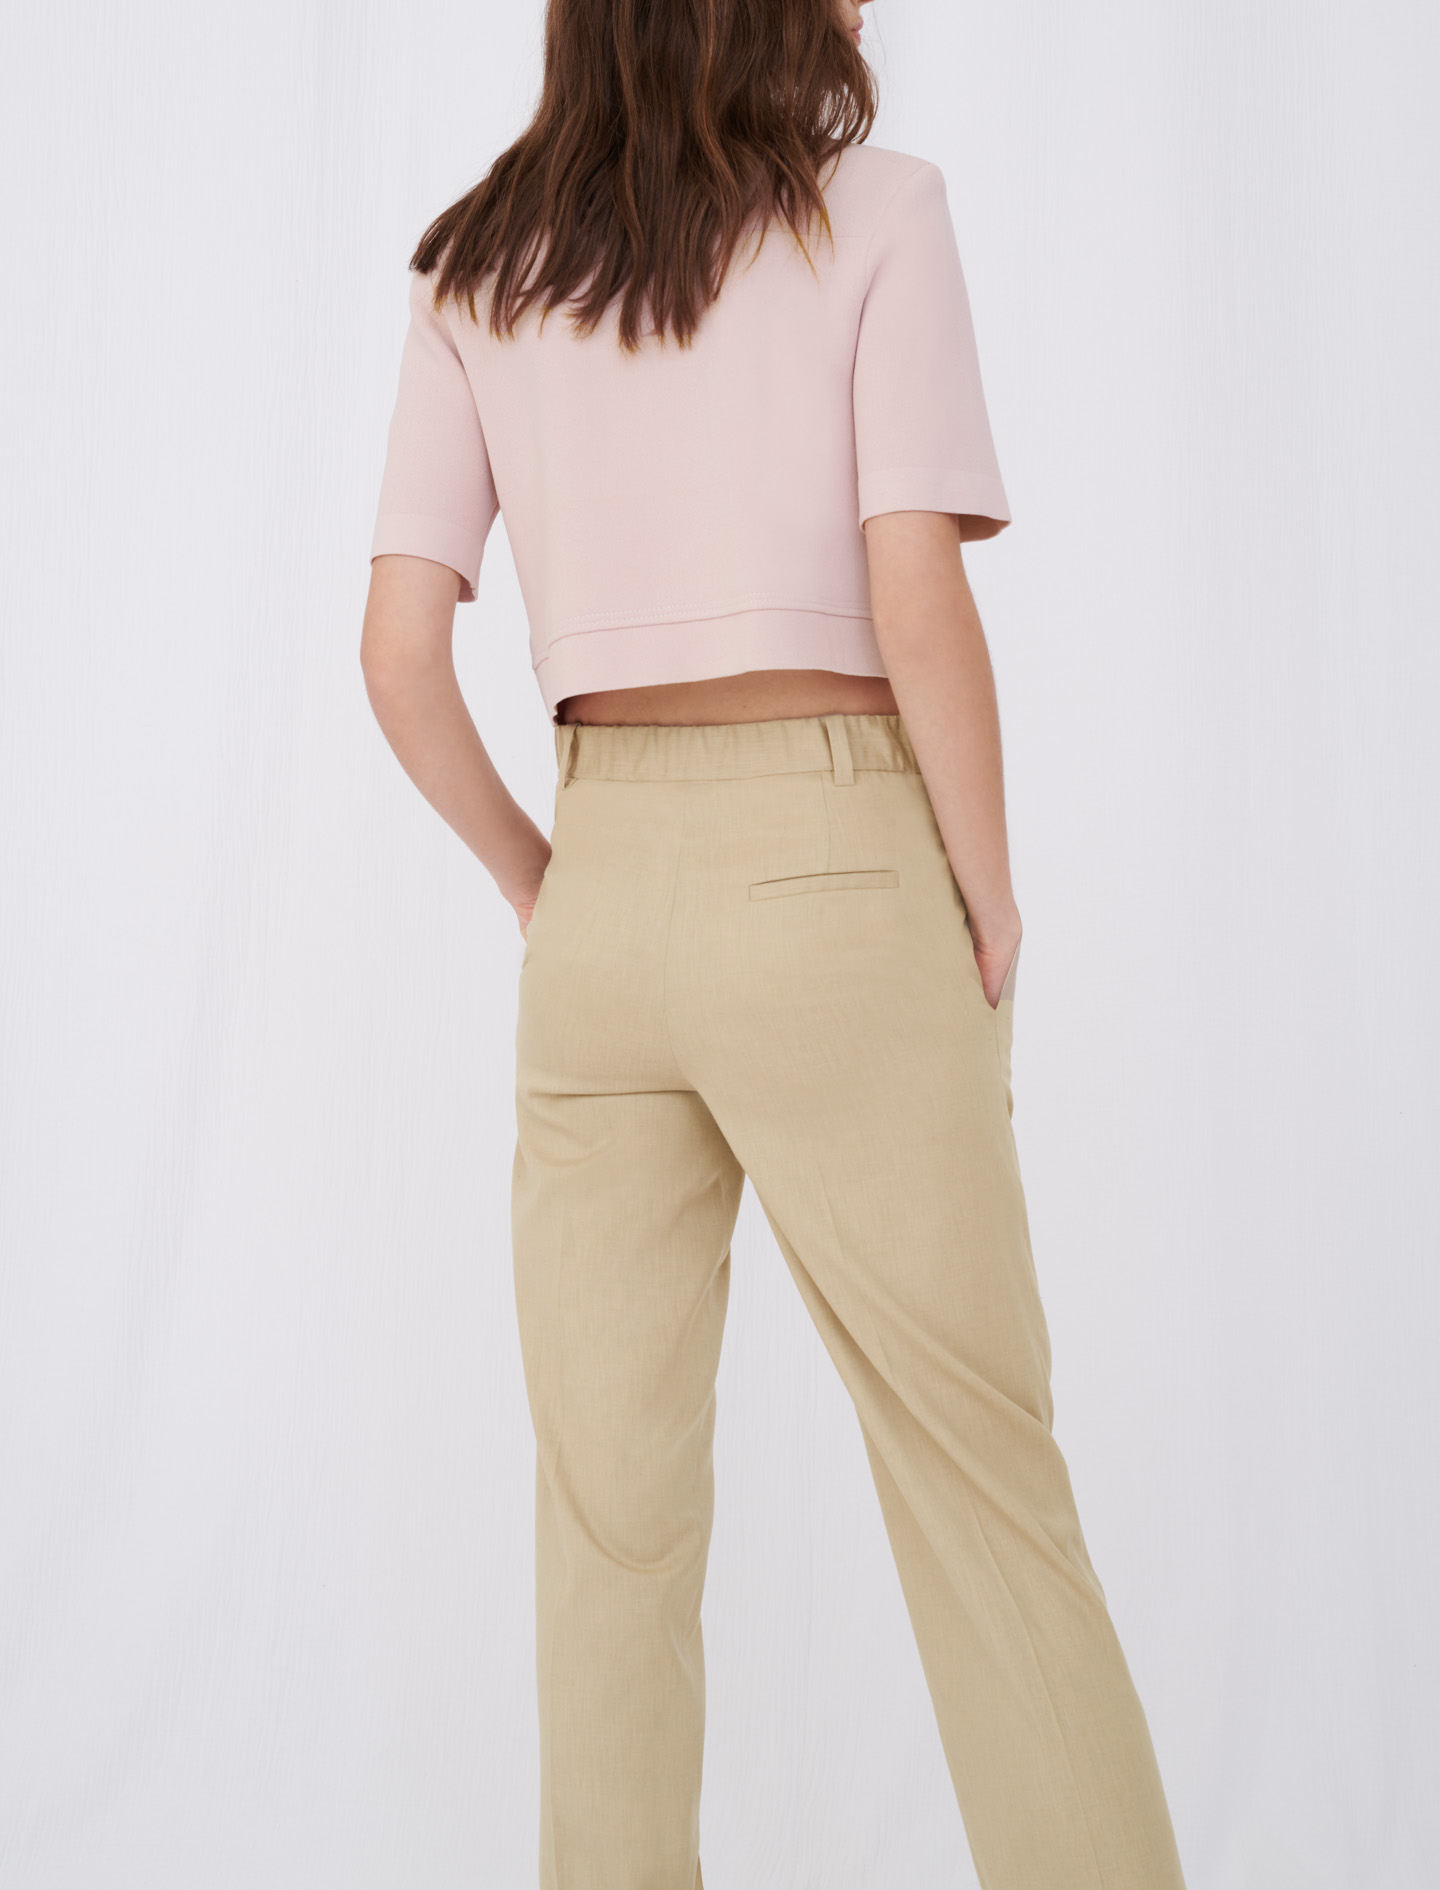 Cropped cardigan with contrasting bands - Pink